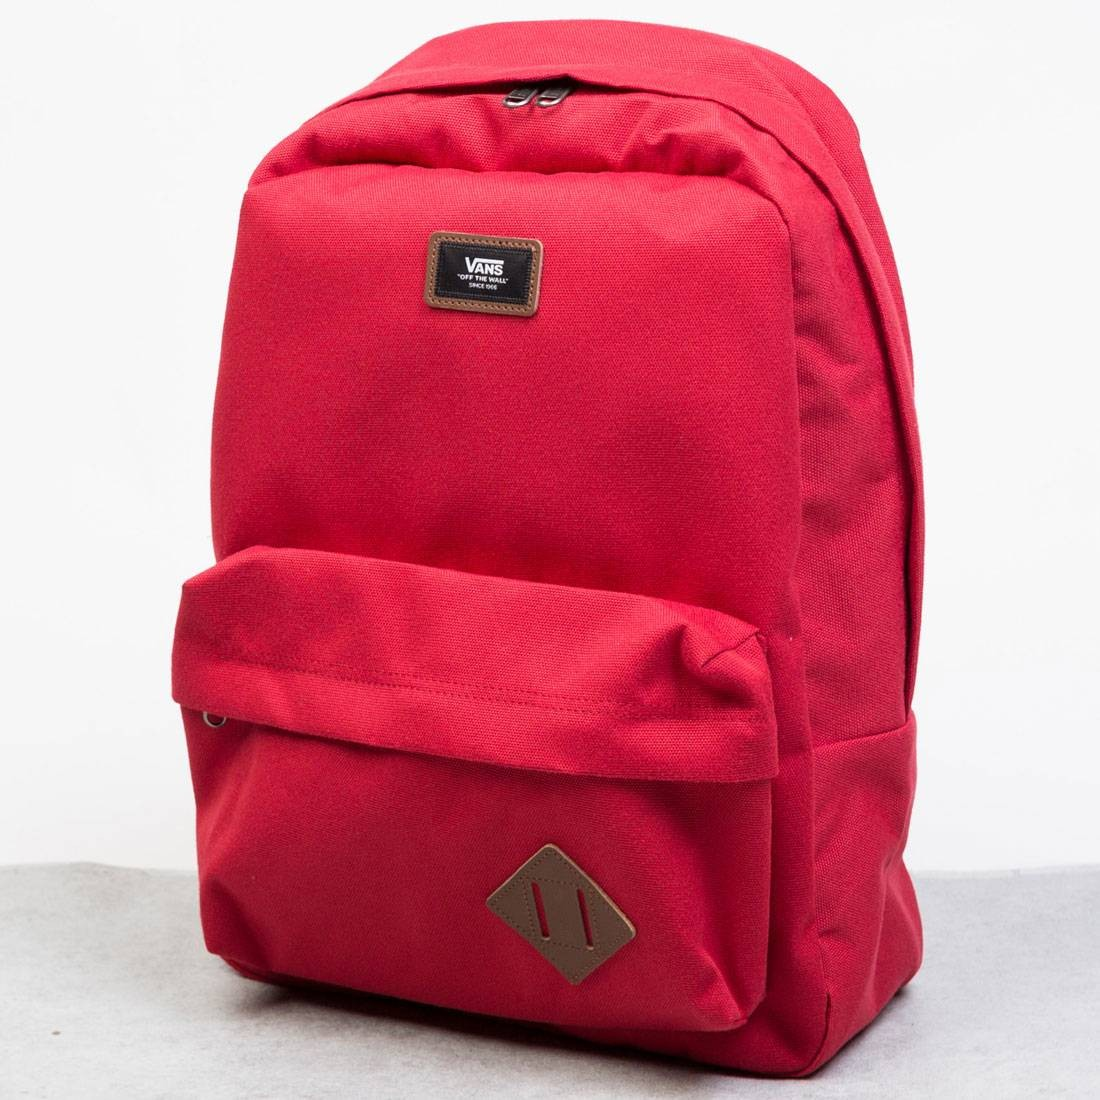 Vans Old Skool II Backpack red chilli pepper